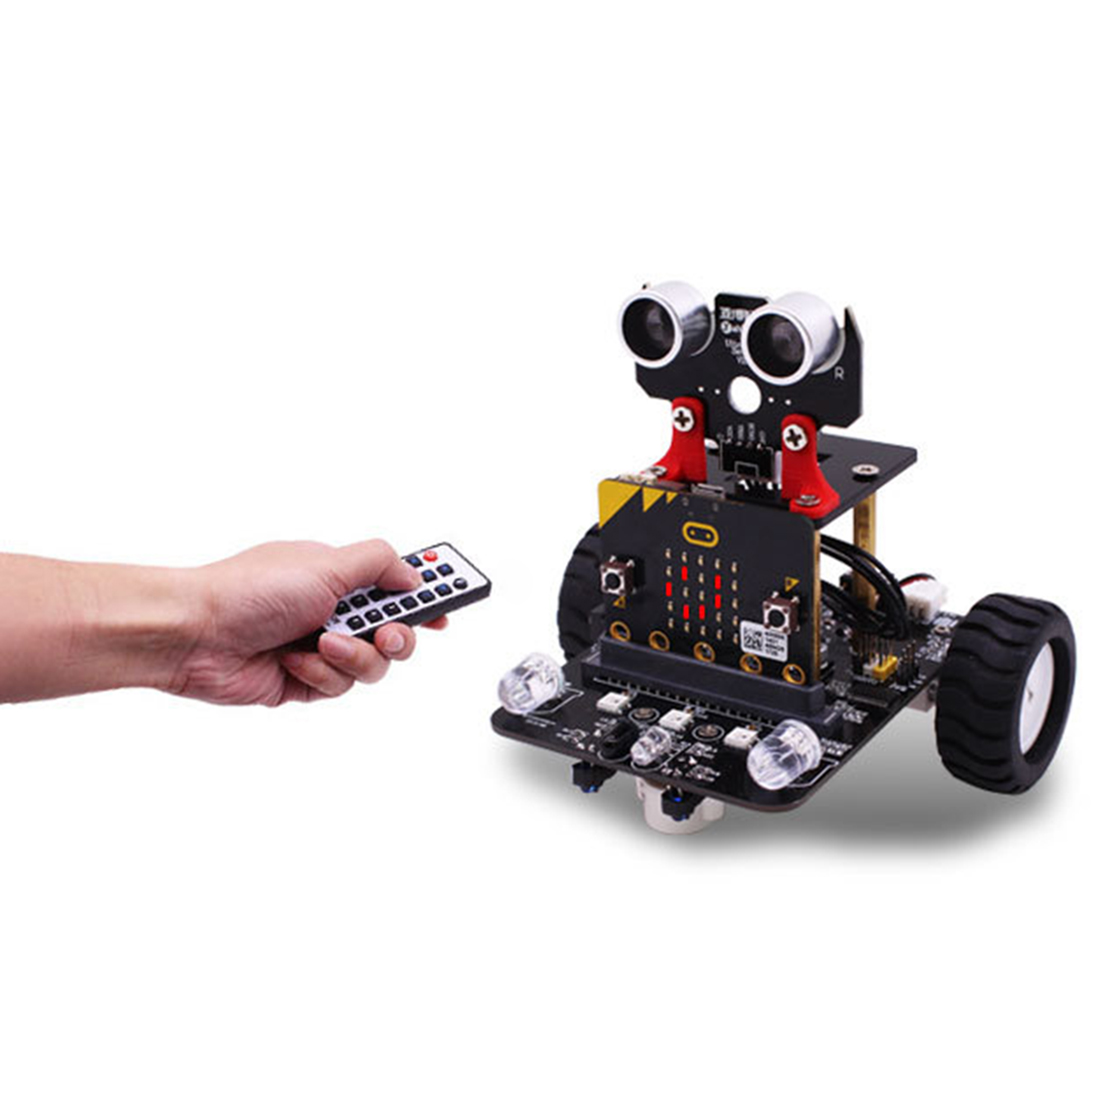 Graphical Programmable Robot Car with Bluetooth IR and Tracking Module Stem Steam Robot Car Toy for Micro:bit BBC 2